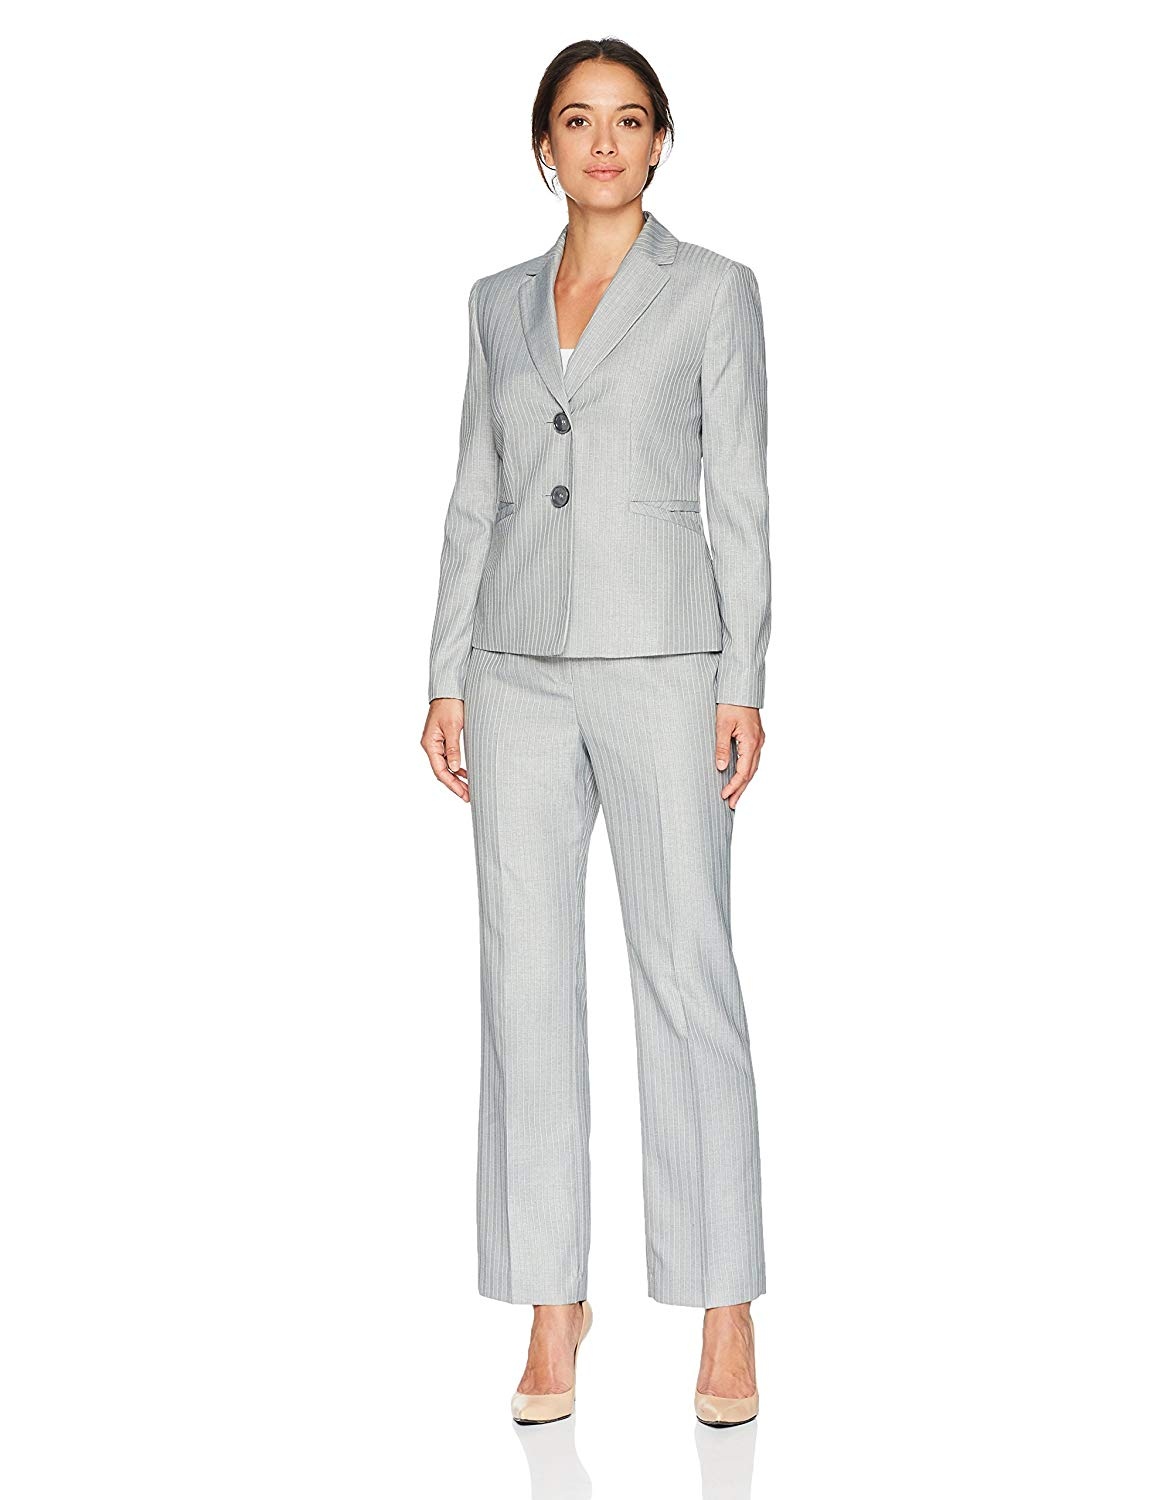 passed-out-womens-petite-pantsuits